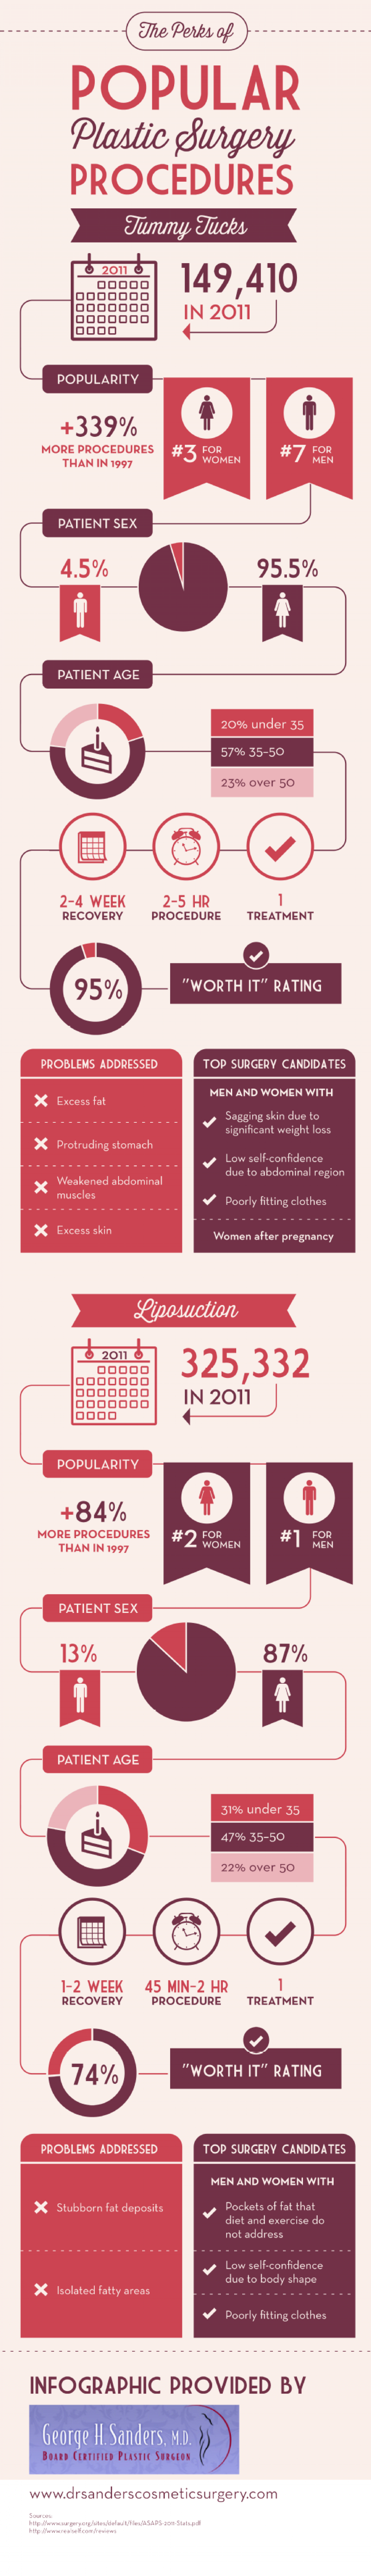 The Perks of Popular Plastic Surgery Procedures  Infographic